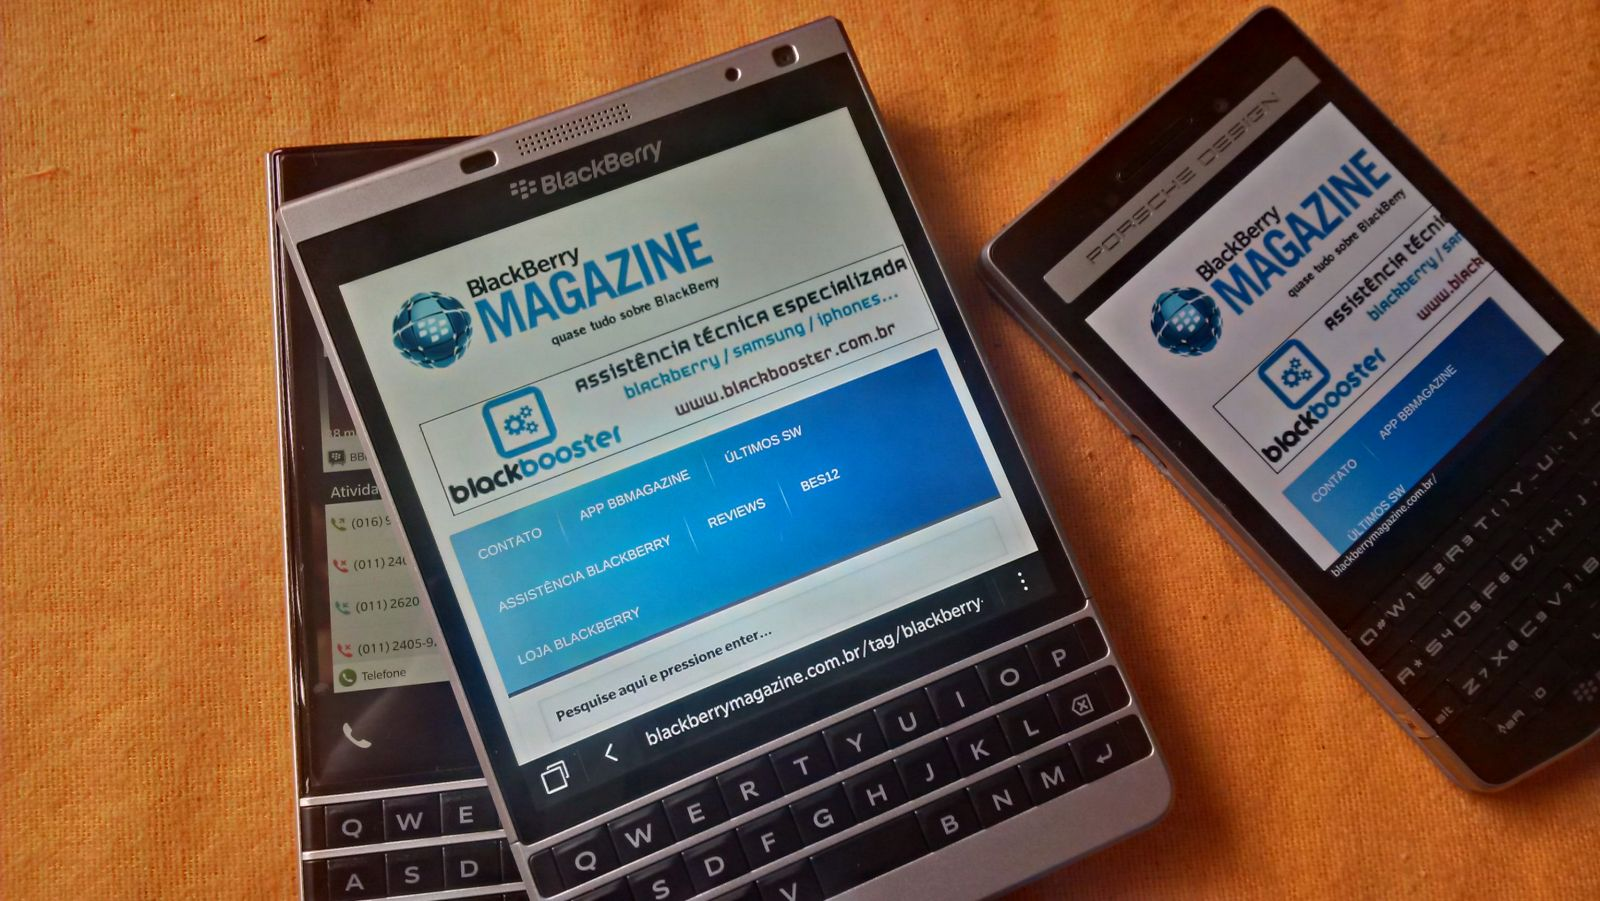 silver-eition-blackberry-magazine